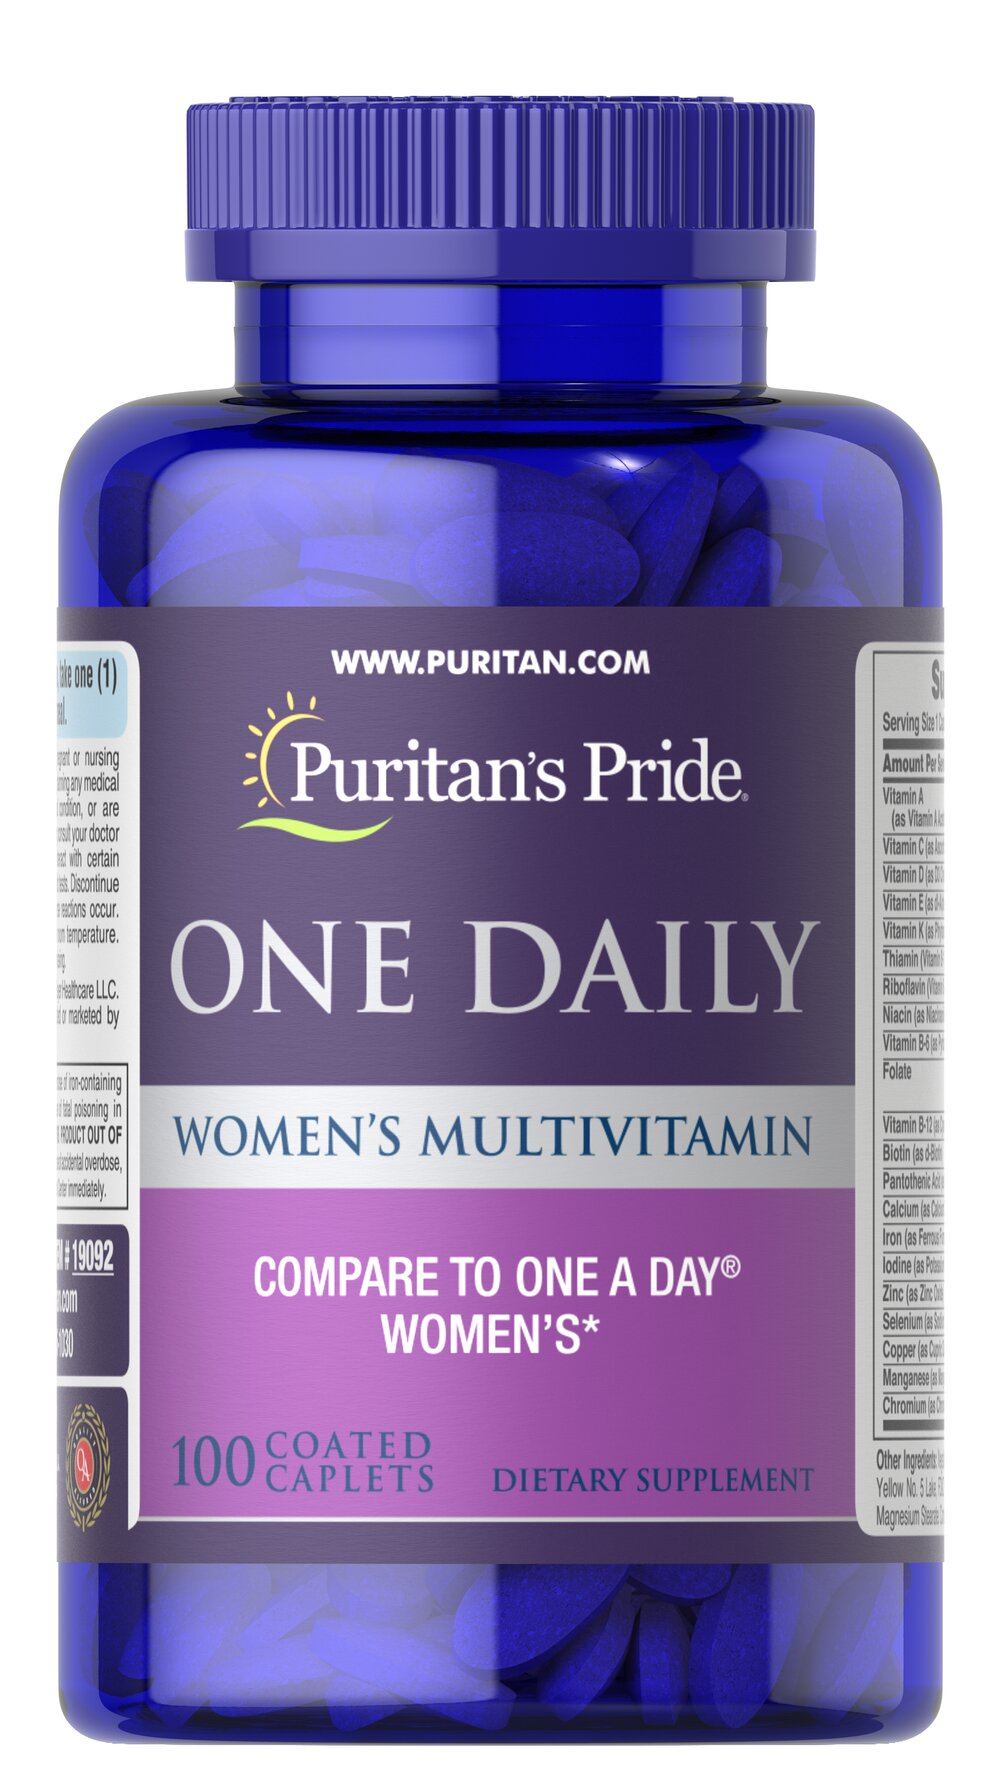 Women's One Daily Multivitamins <p><strong>A Convenient Vitamin for the Woman on the Go!</strong></p><p>Once-daily formula provides a valuable array of vitamins and minerals</p><p>Includes 1000 IU of Vitamin D to promote bone and immune system health**</p><p>Provides 100% of the Daily Value of 5 different B-Vitamins to aid with energy metabolism and nervous system health**</p> 100 Caplets  $13.99